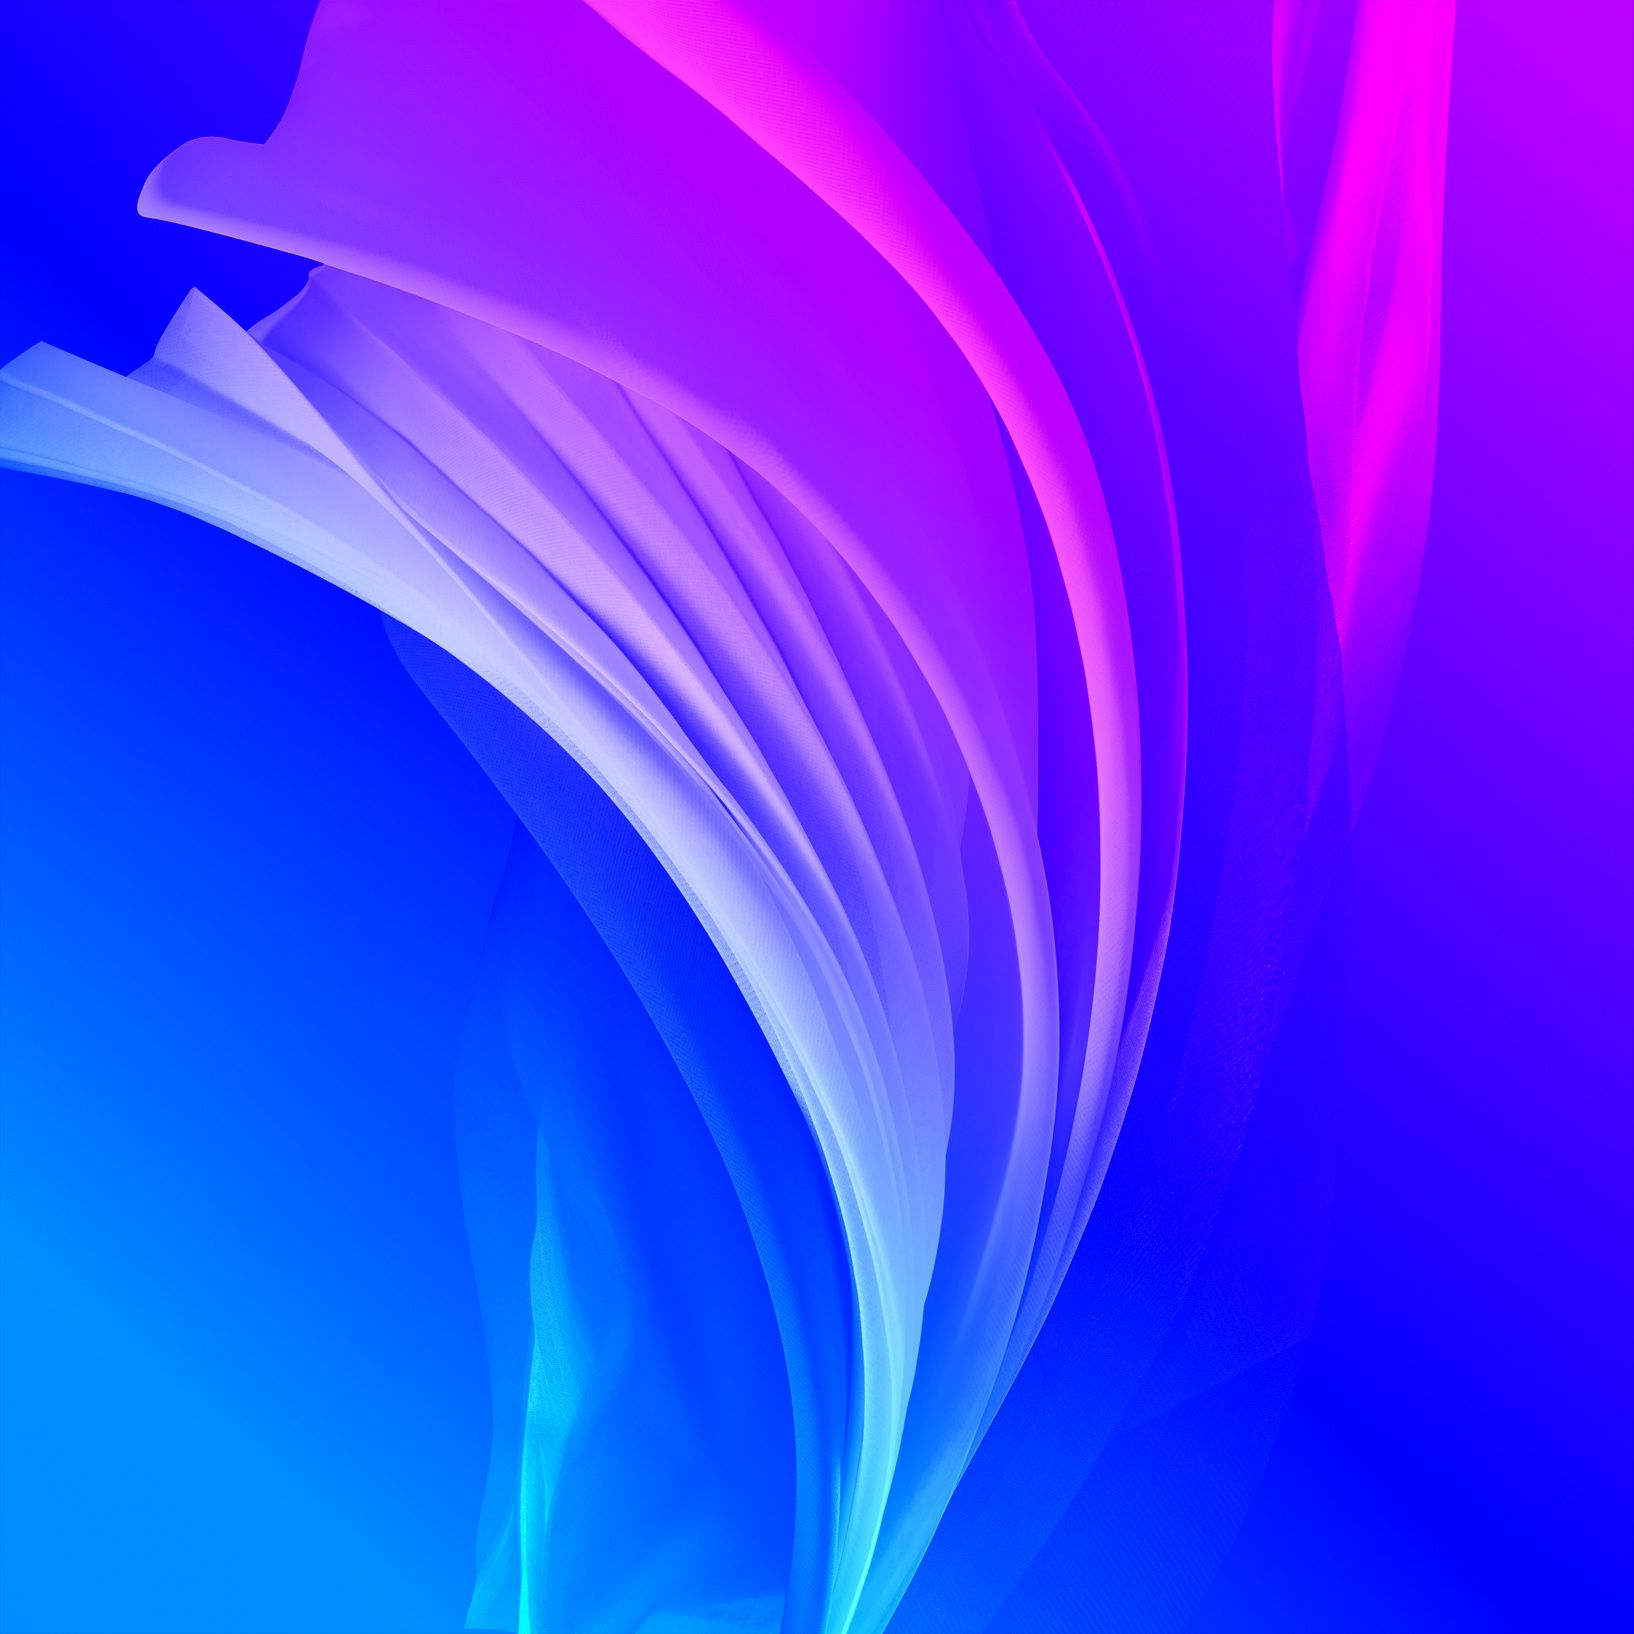 Iphone Se 2020 Wallpapers Top Free Iphone Se 2020 Backgrounds Wallpaperaccess